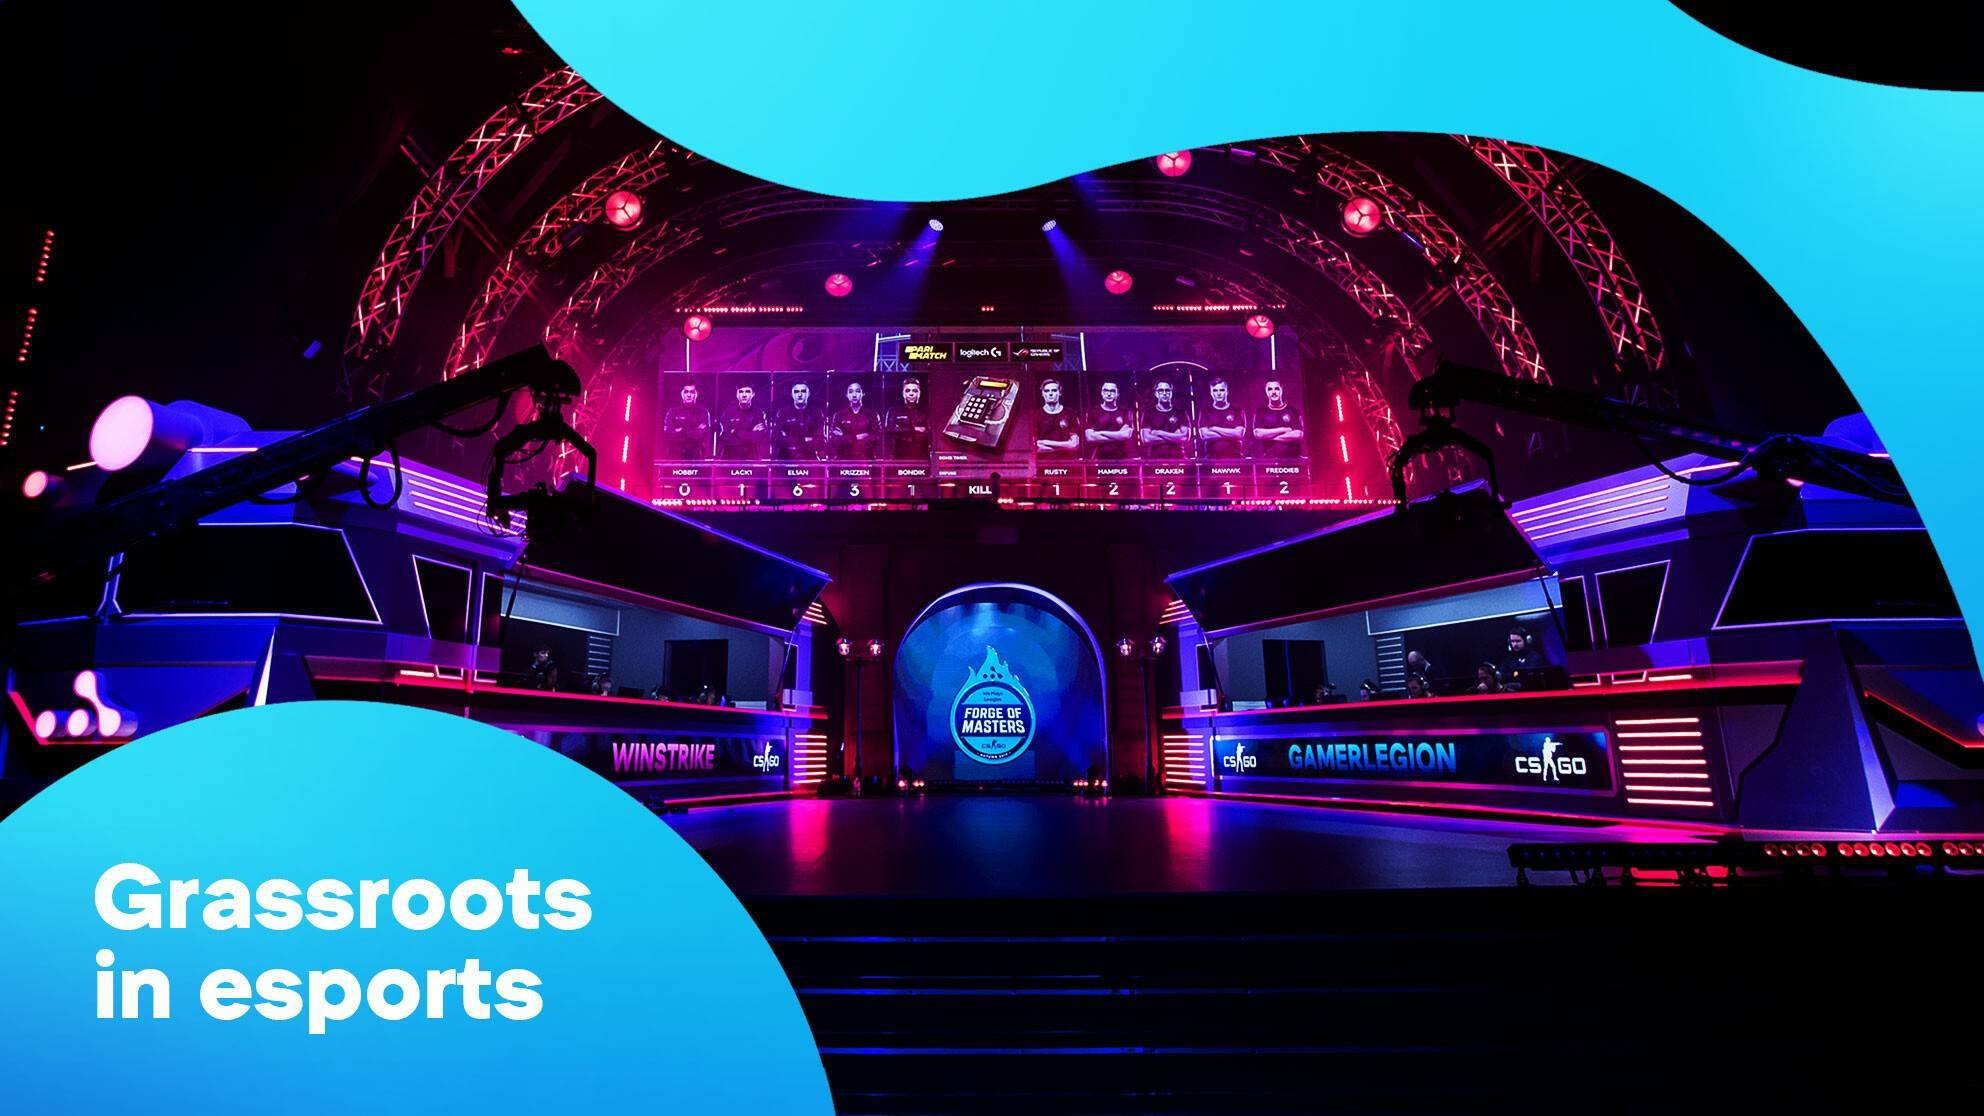 Grassroots in esports